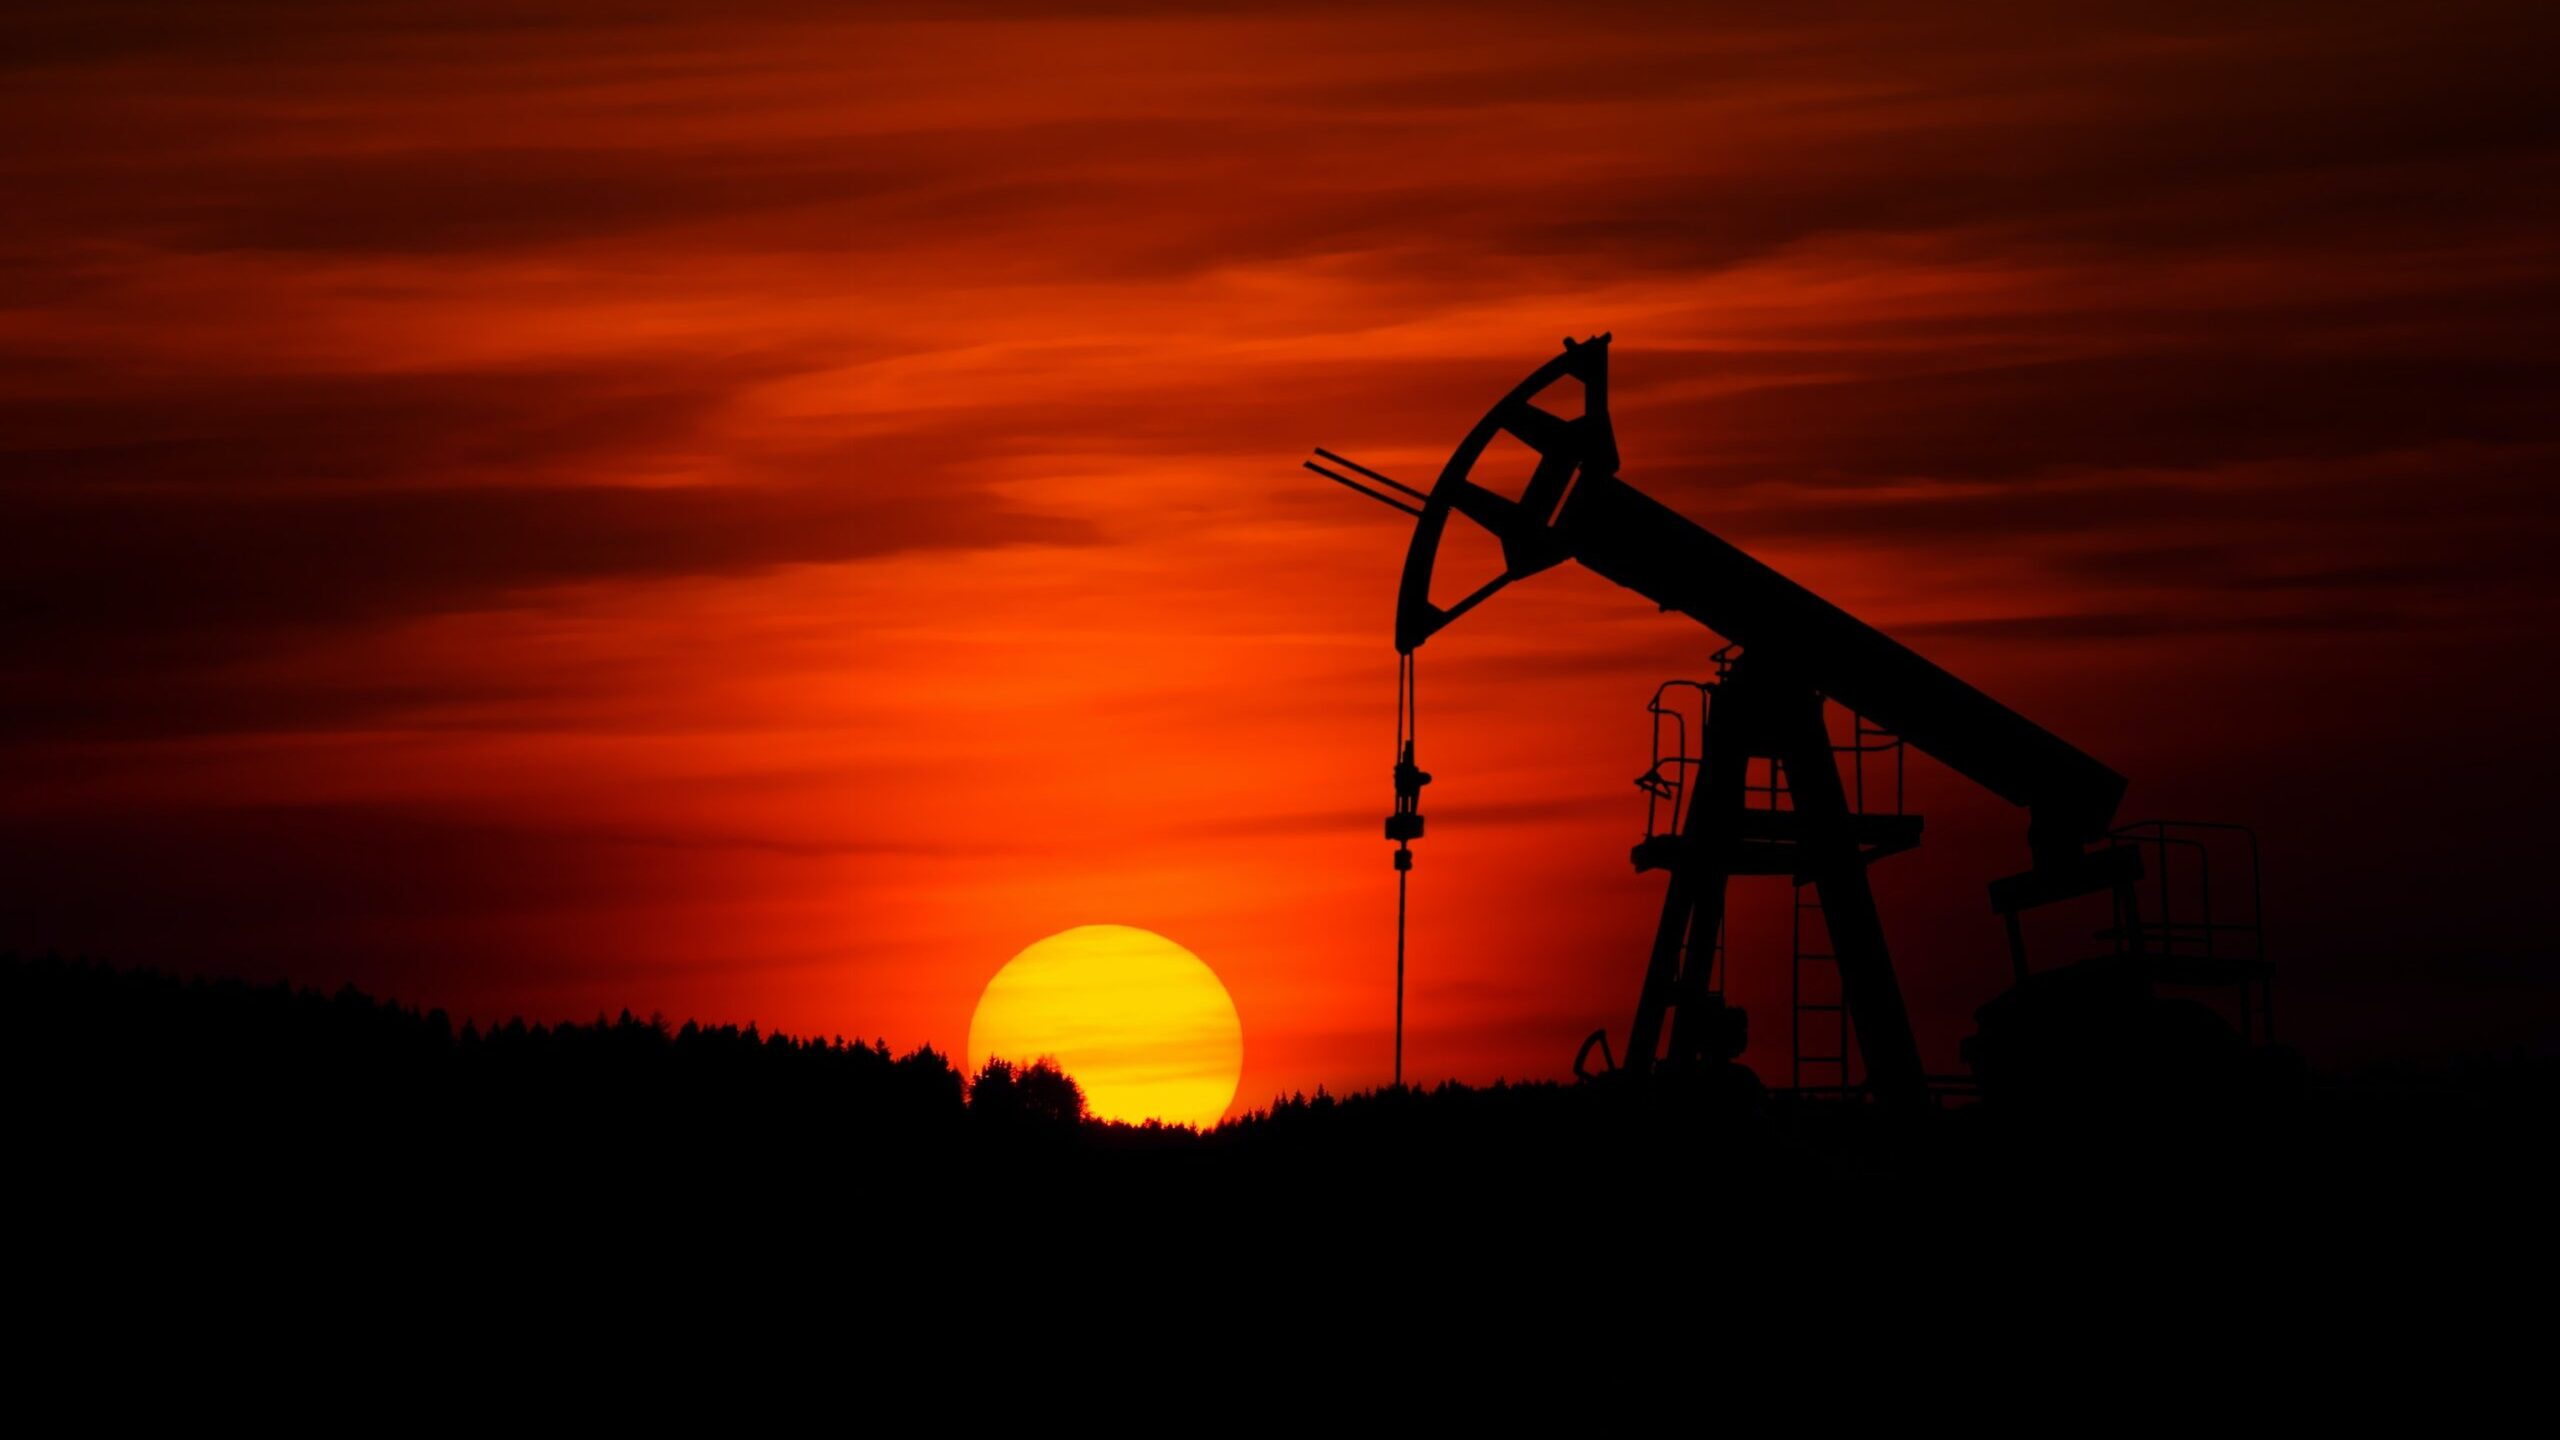 Post-Holiday Blues And OPEC Spats Bruise Commodity Markets